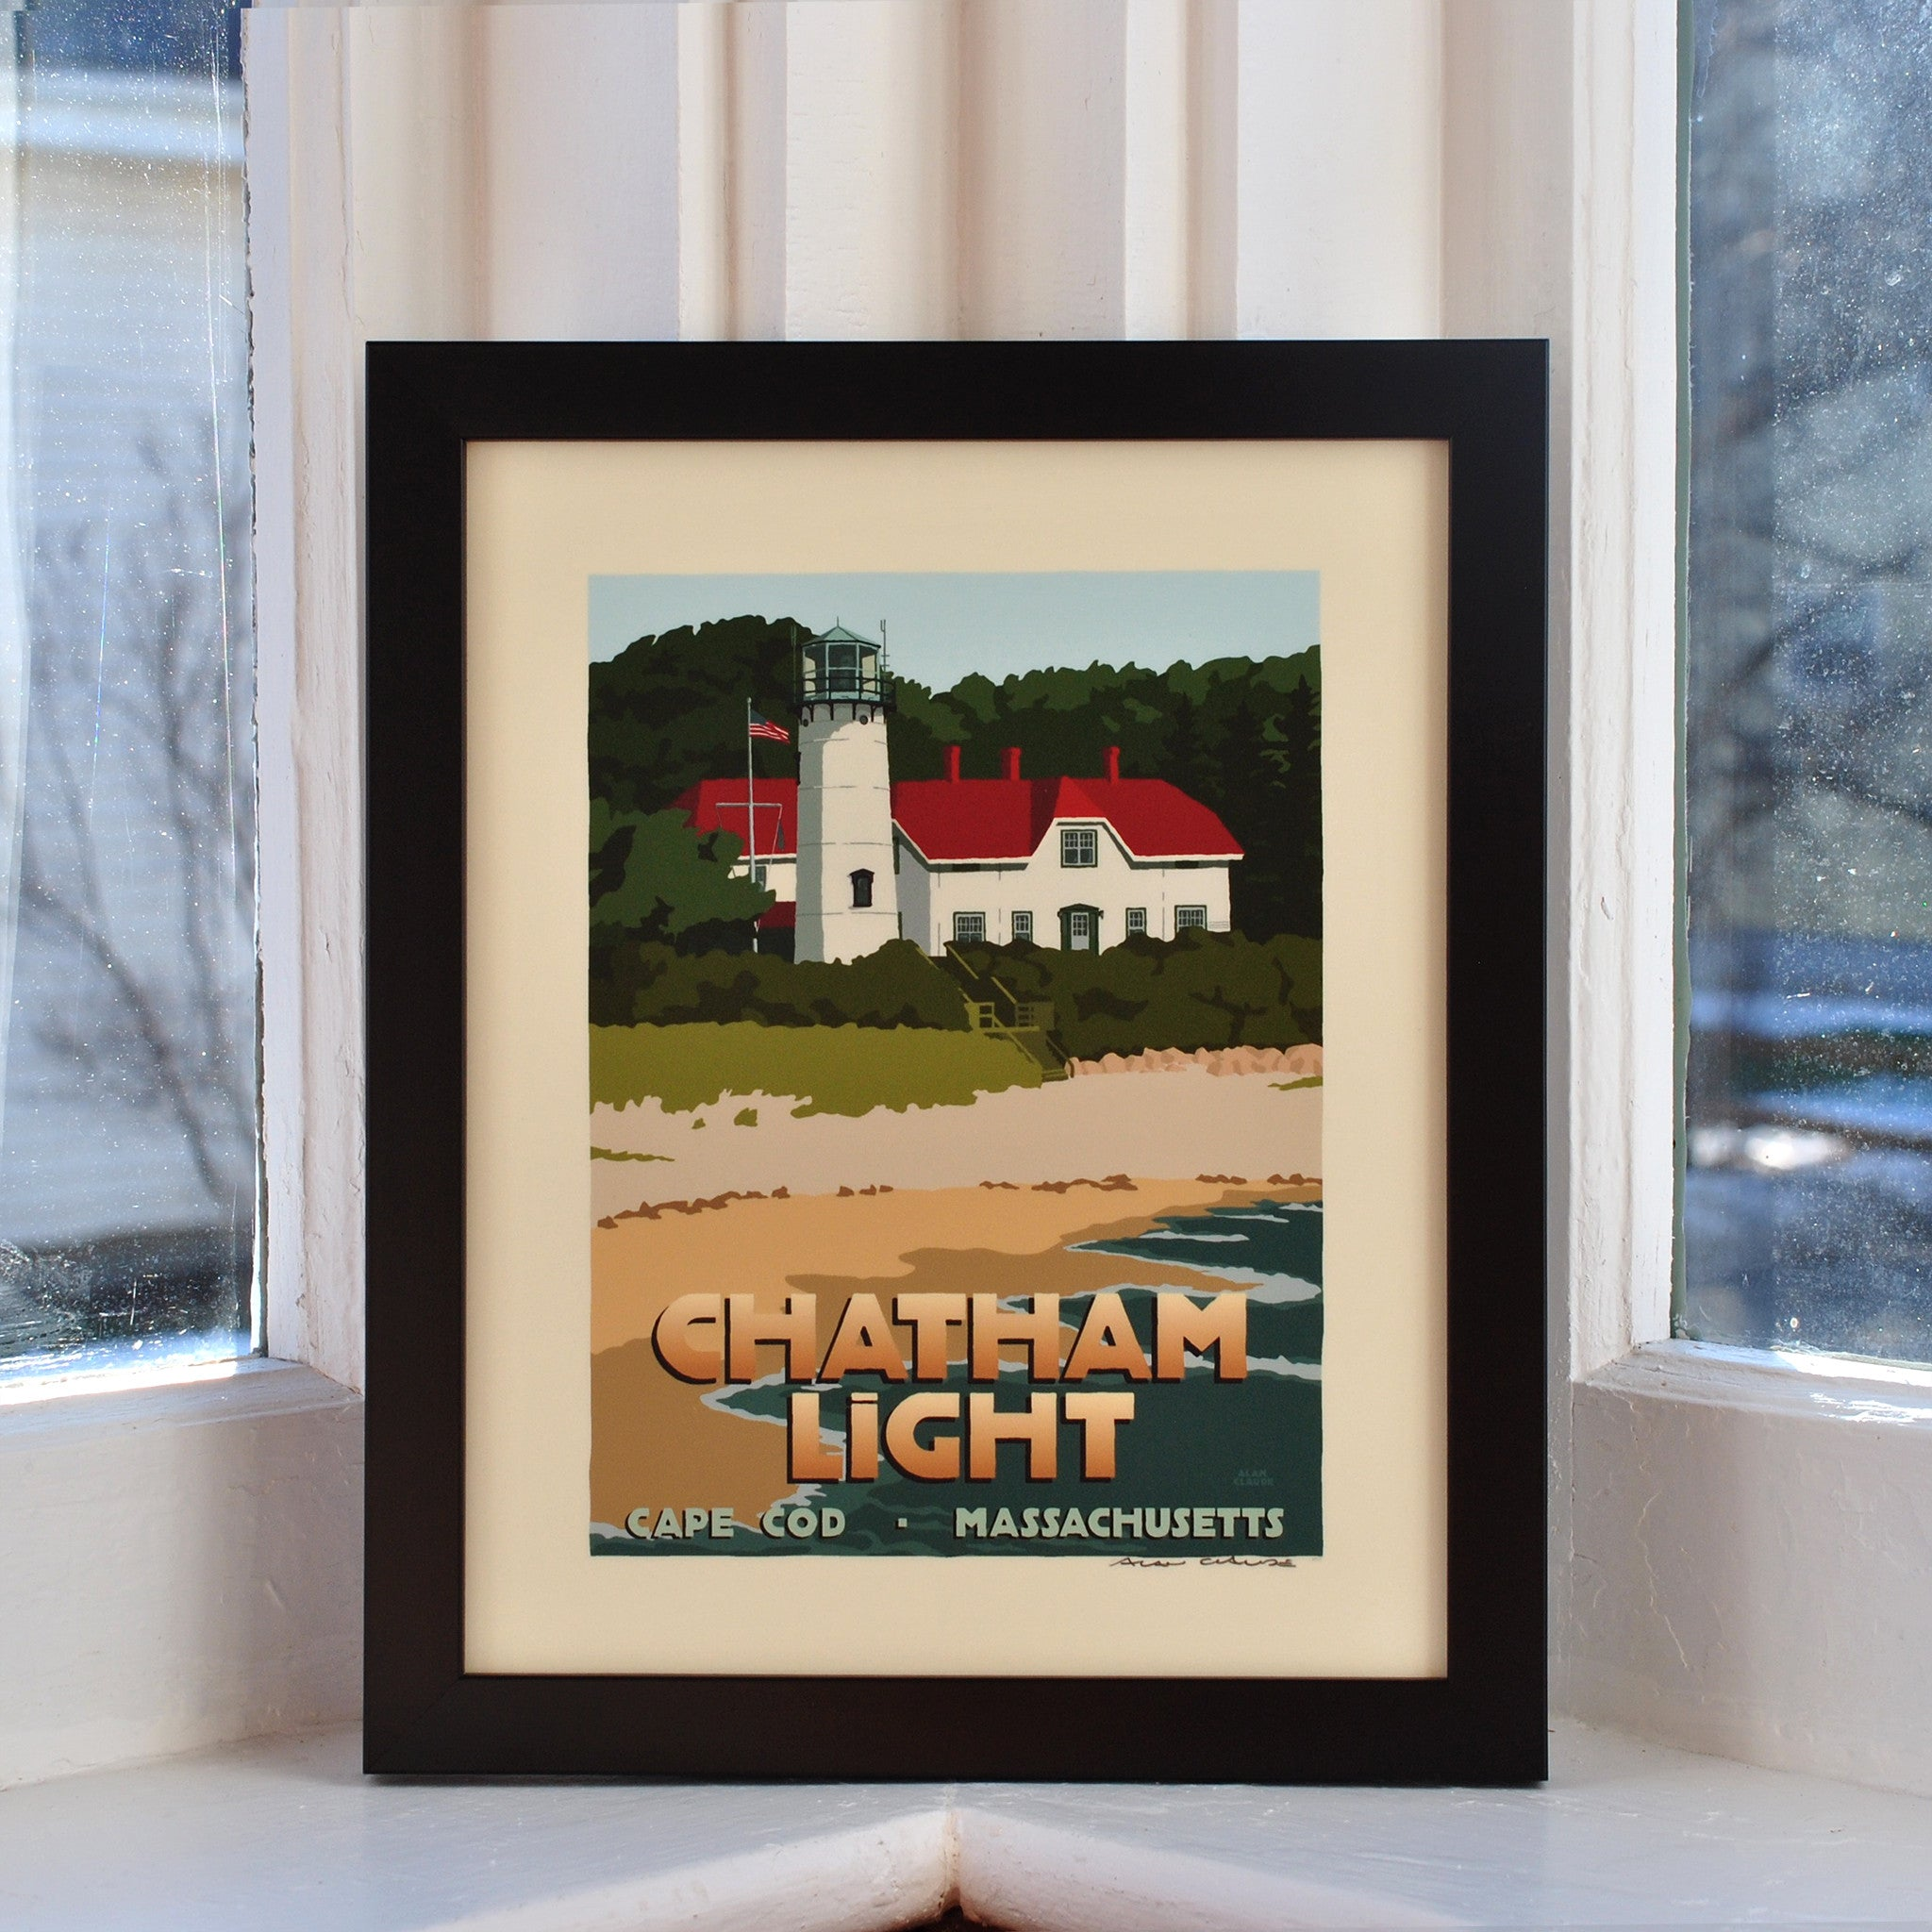 "Chatham Light Art Print 8"" x 10"" Framed Travel Poster - Massachusetts"